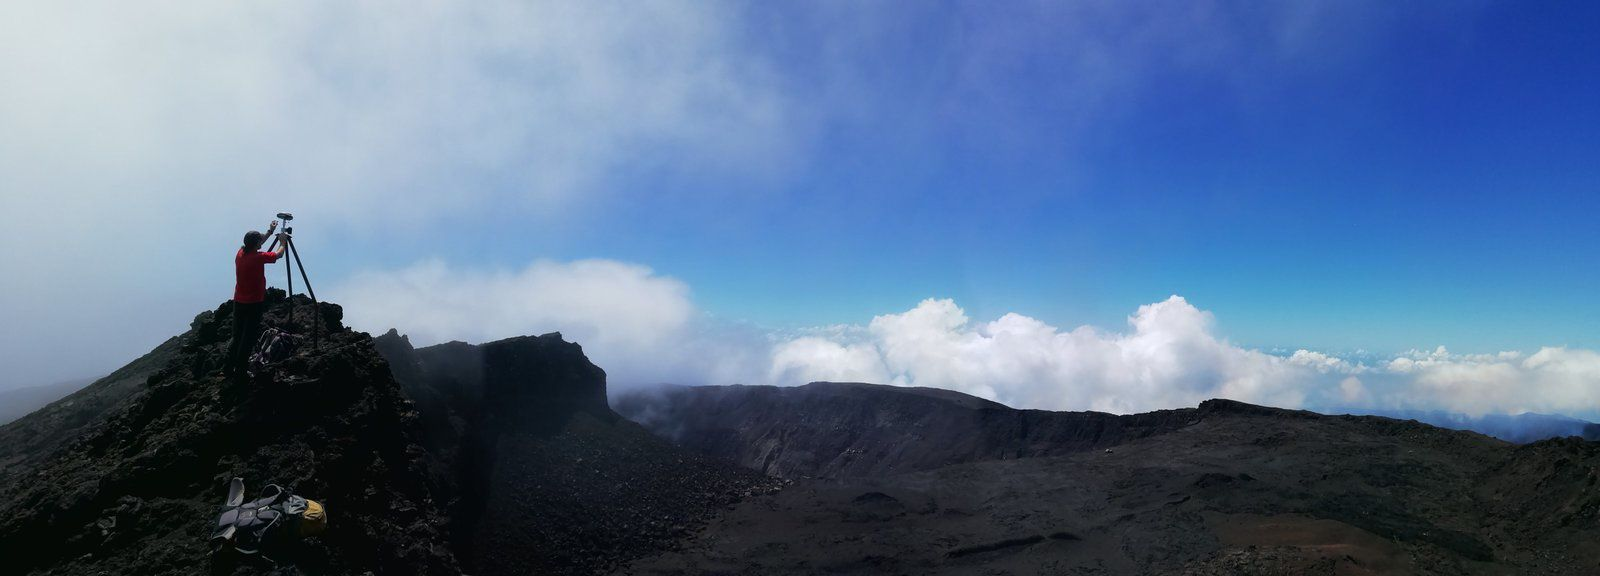 Piton de La Fournaise - the OVPF teams in measurement and maintenance work on the summit of the volcano - OVPF / Twitter photos